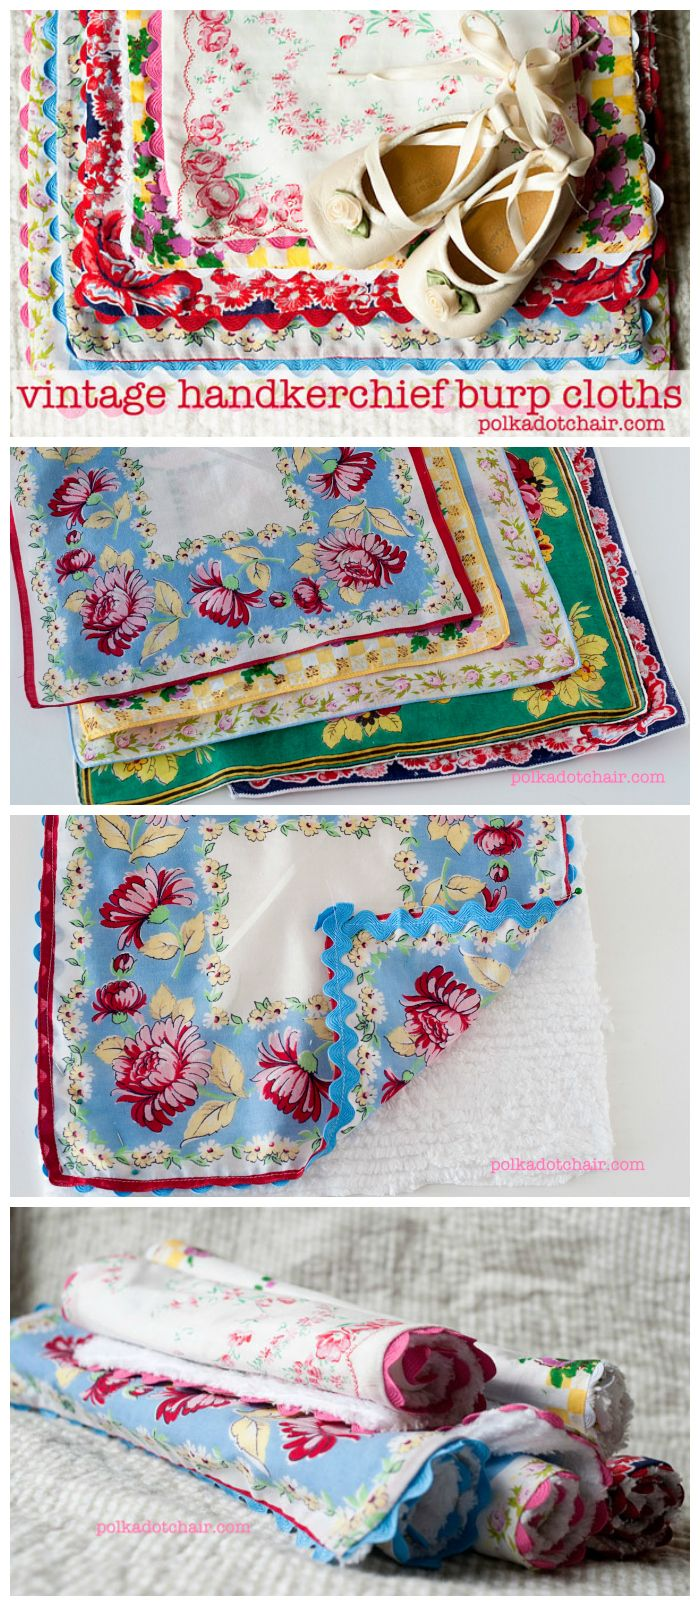 Repurpose Vintage Hankies into a sweet gift for a new baby. Burp Cloths made from Vintage Handkerchiefs